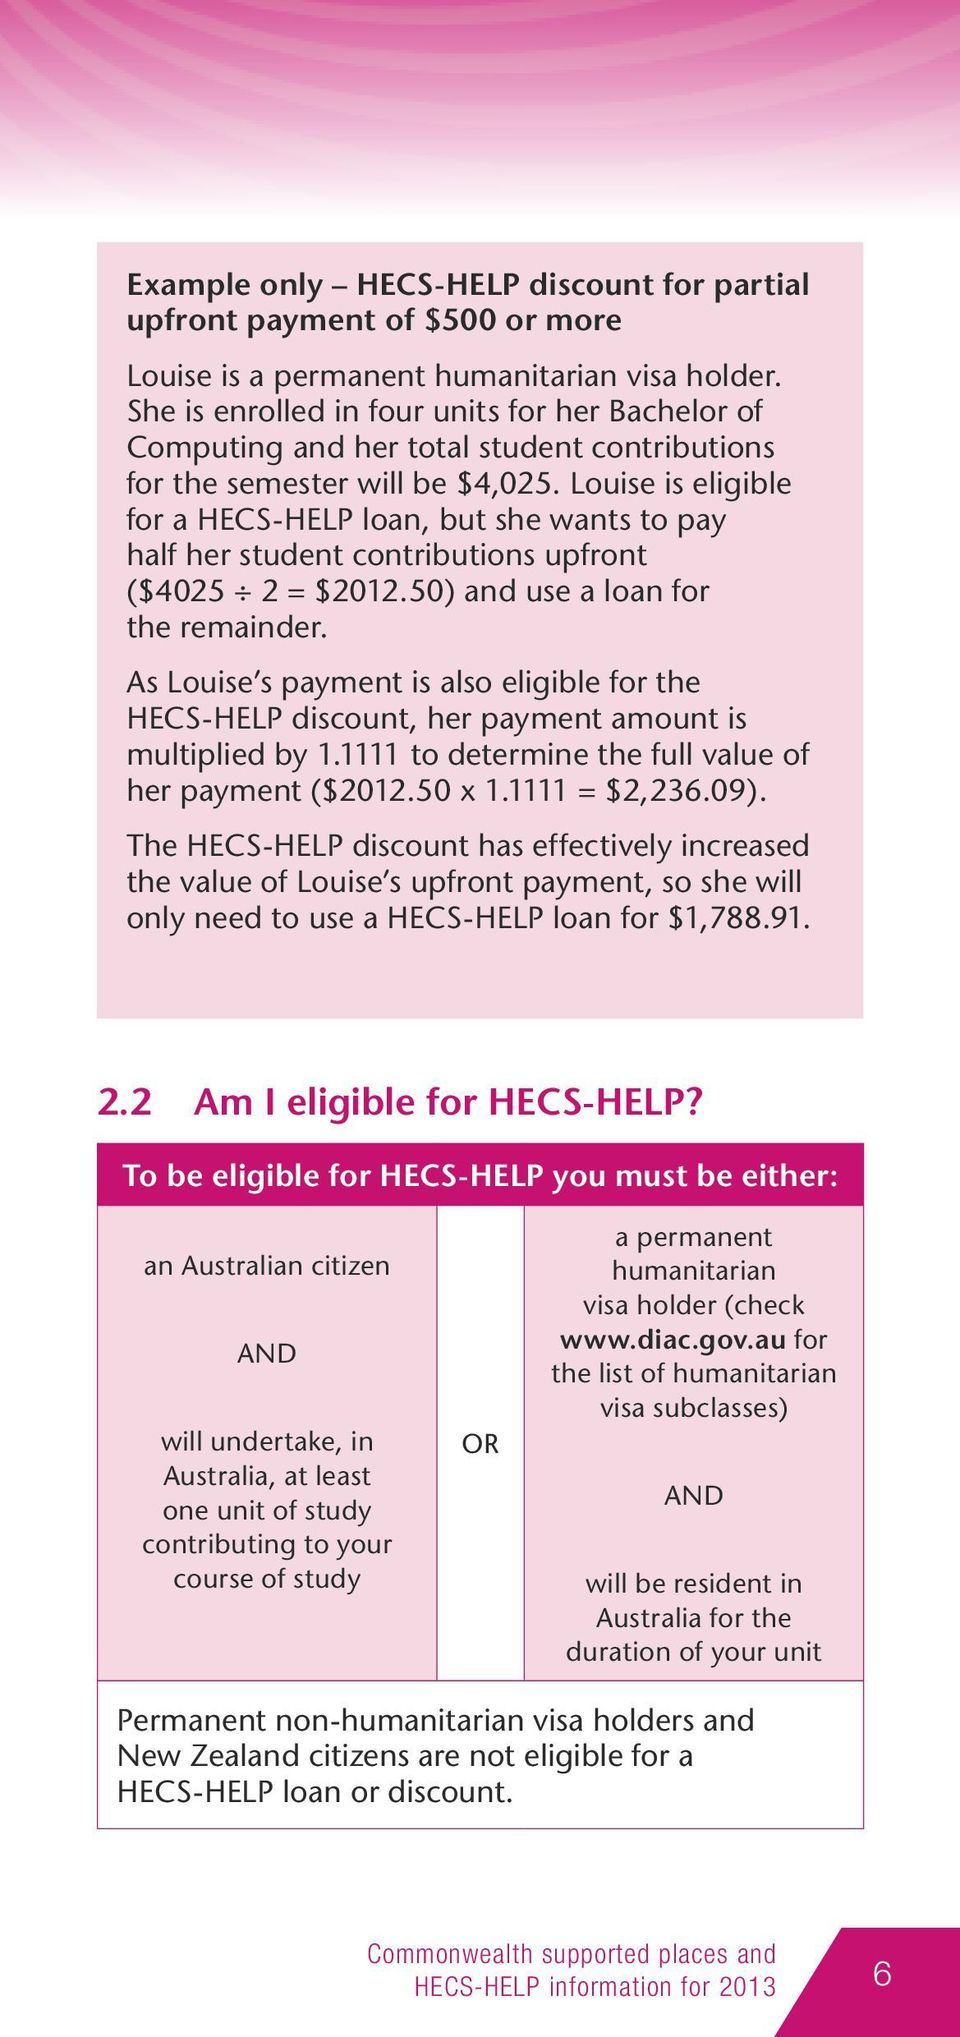 Louise is eligible for a HECS-HELP loan, but she wants to pay half her student contributions upfront ($4025 2 = $2012.50) and use a loan for the remainder.